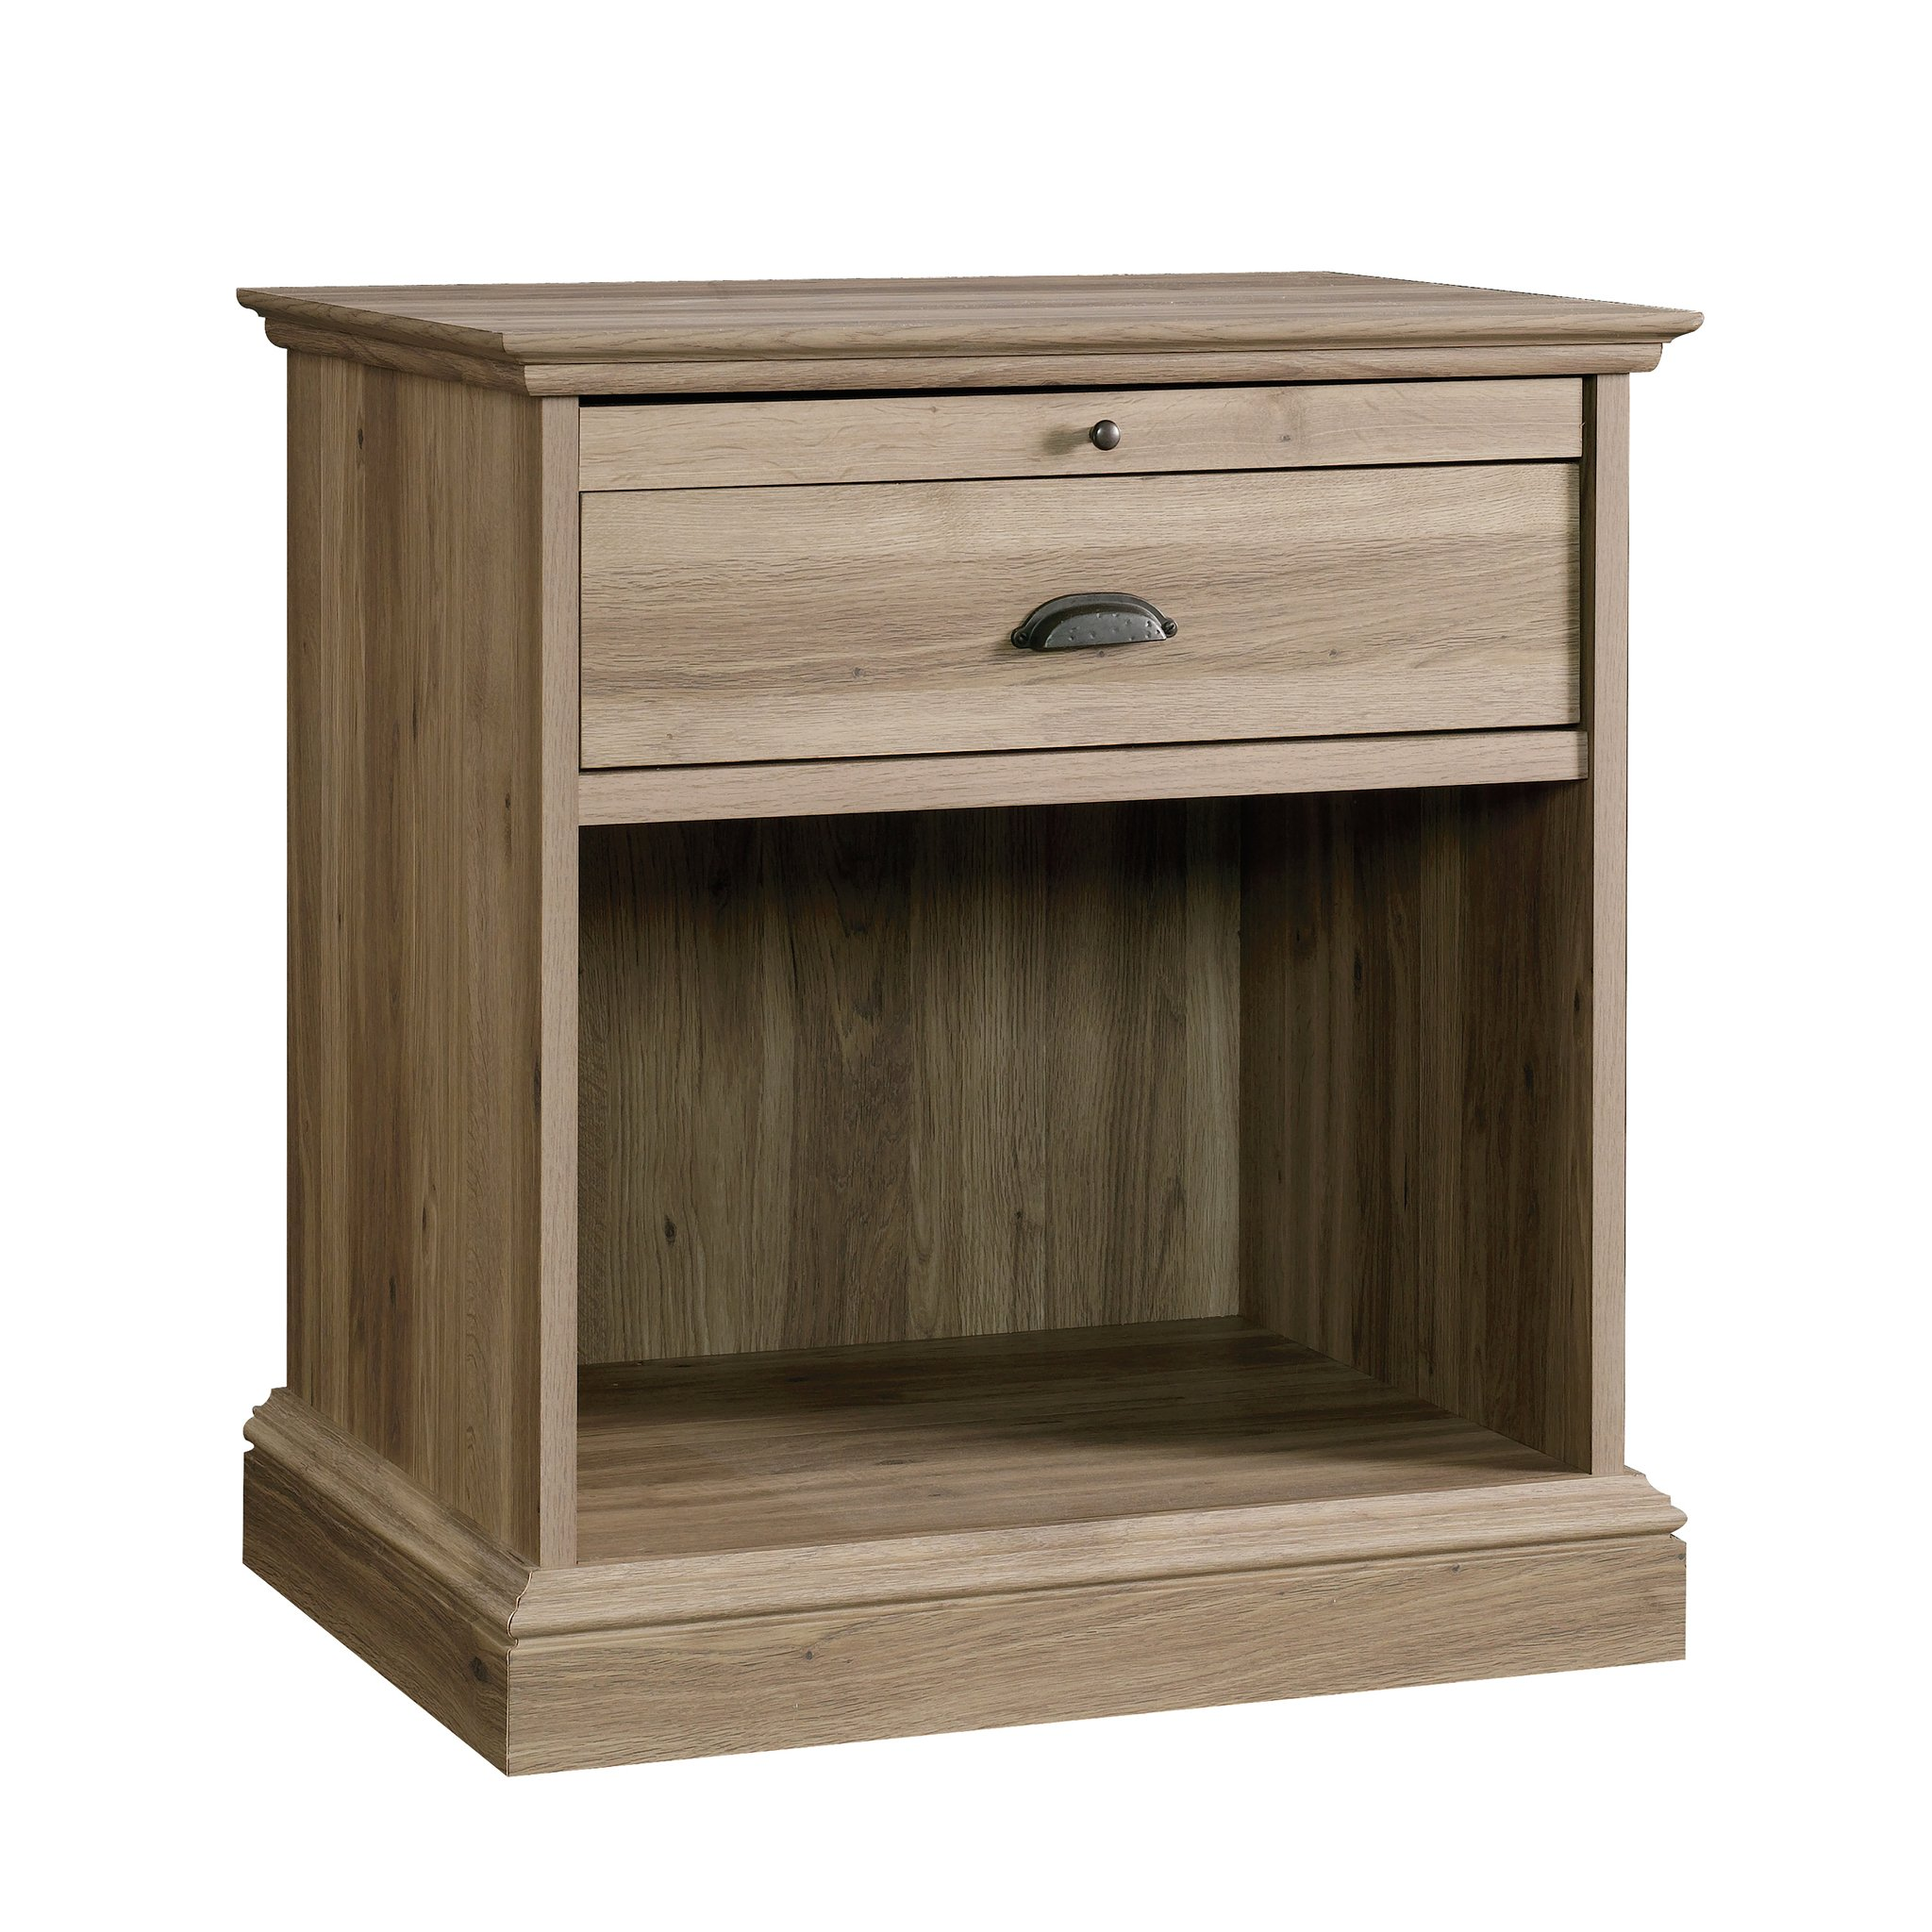 Sauder 418705 Barrister Lane Night Stand, L: 25.98'' x W: 19.45'' x H: 28.03'', Salt Oak finish